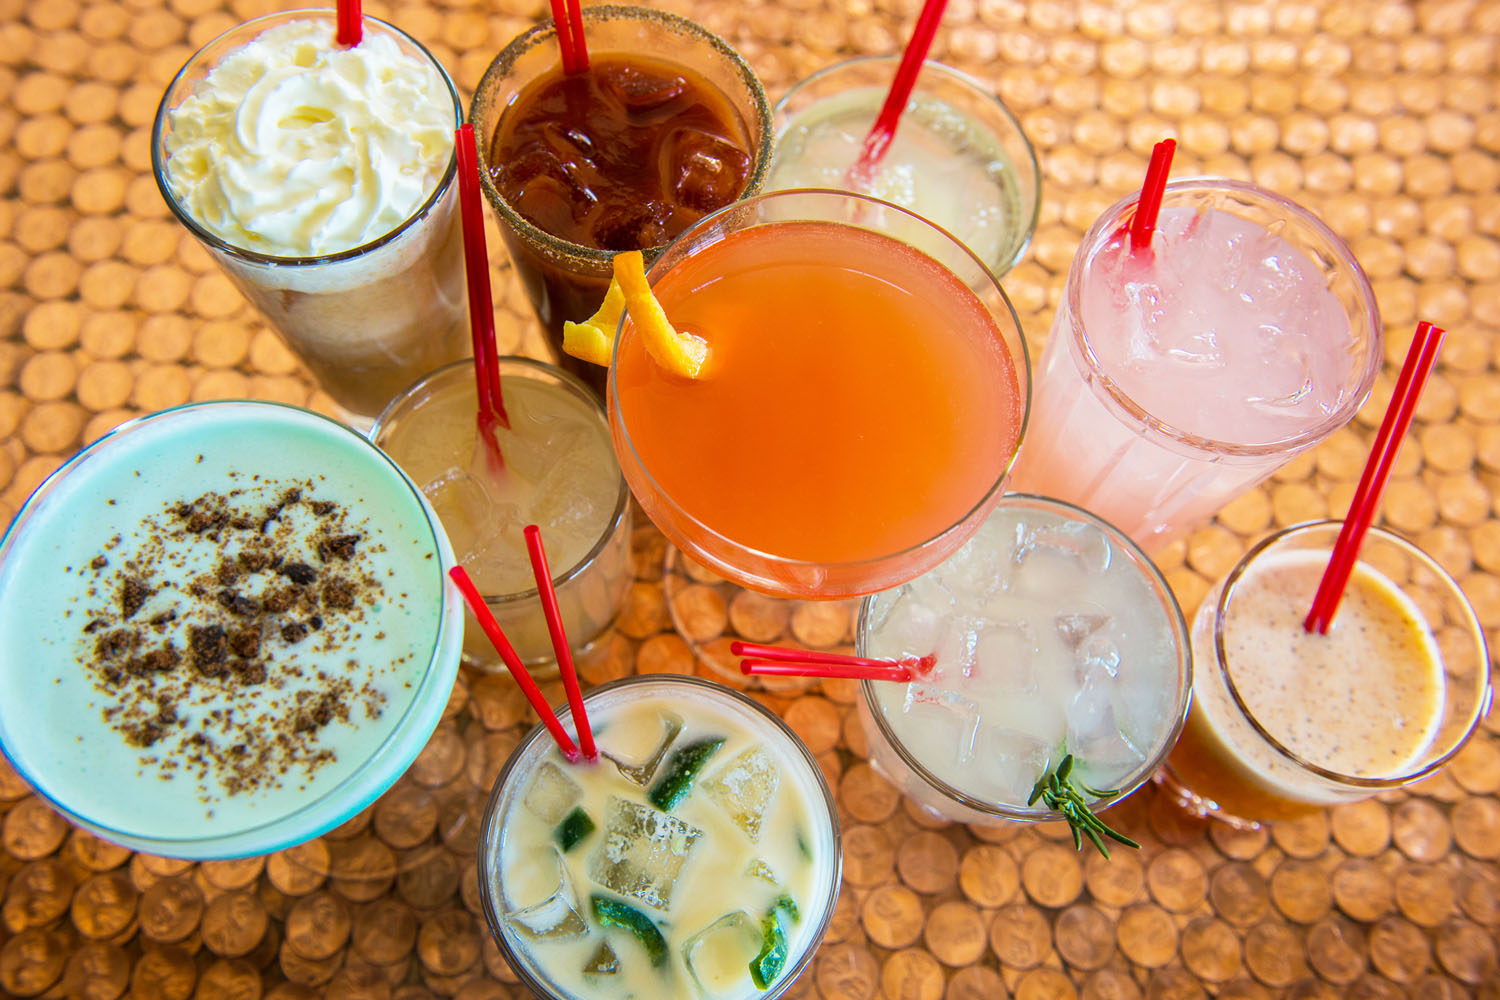 American Fifth Food & Beverage Photography